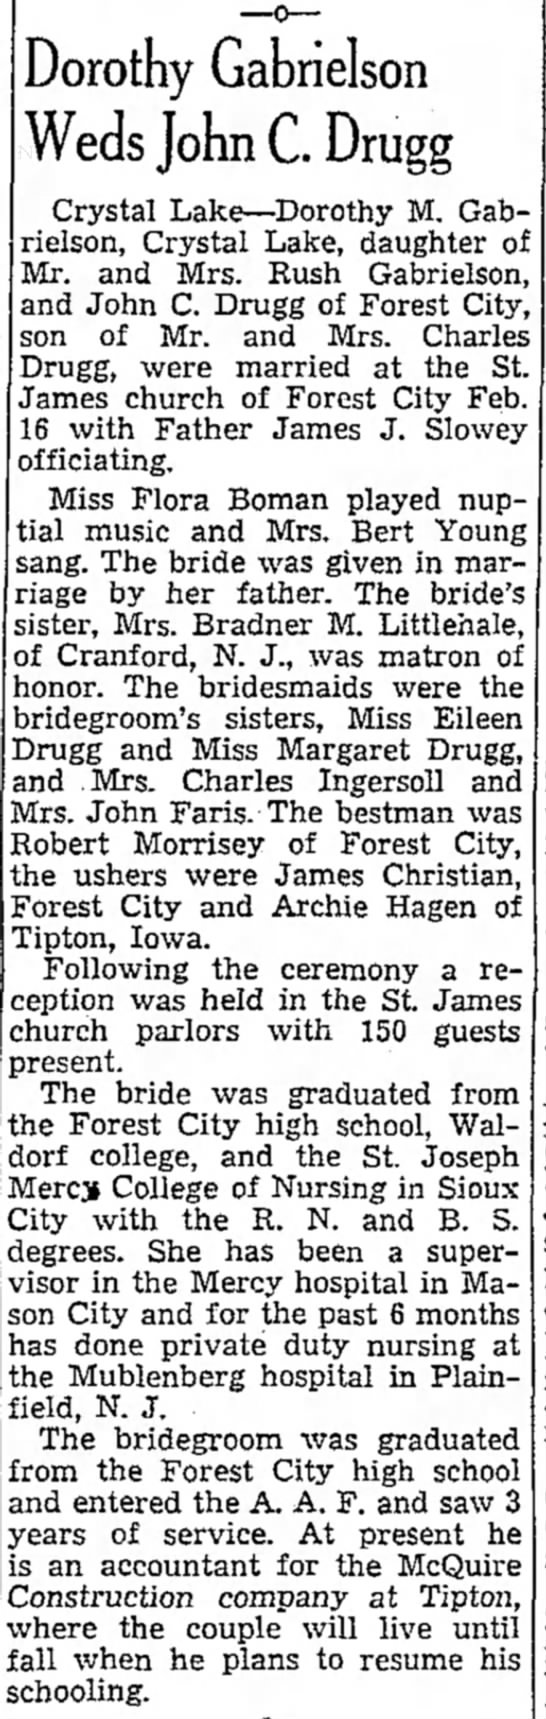 John and Dottie Wedding  - a Maon R 01 be- E. on Of Dorothy Gabrielson...